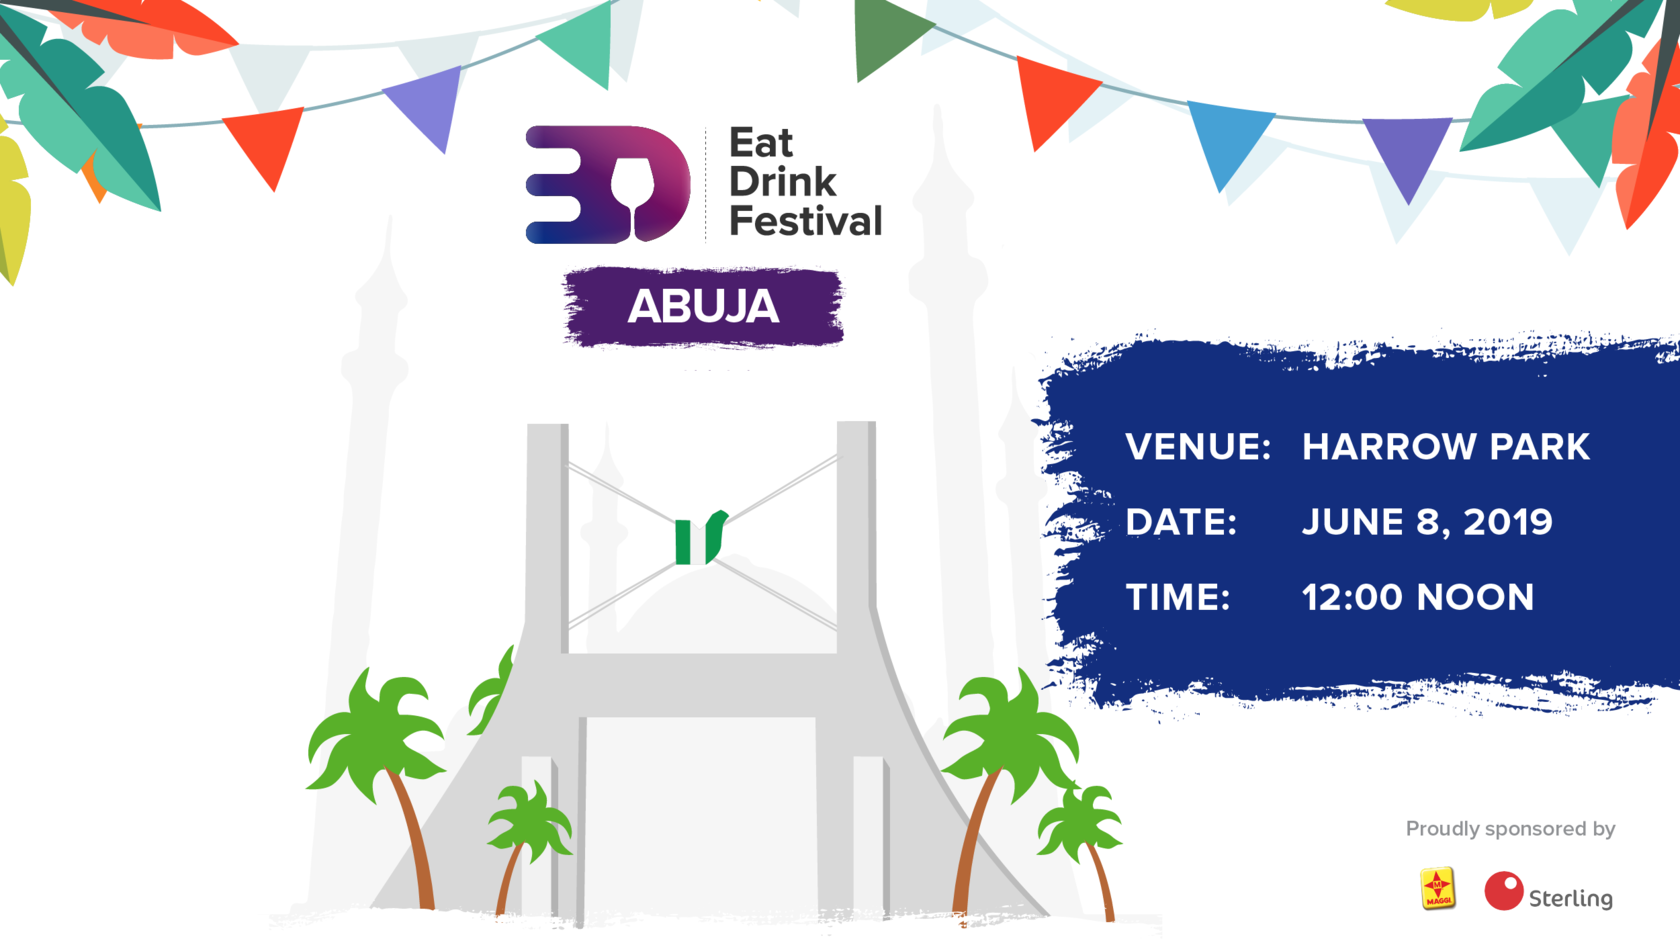 Eat Drink Festival to hold in Abuja